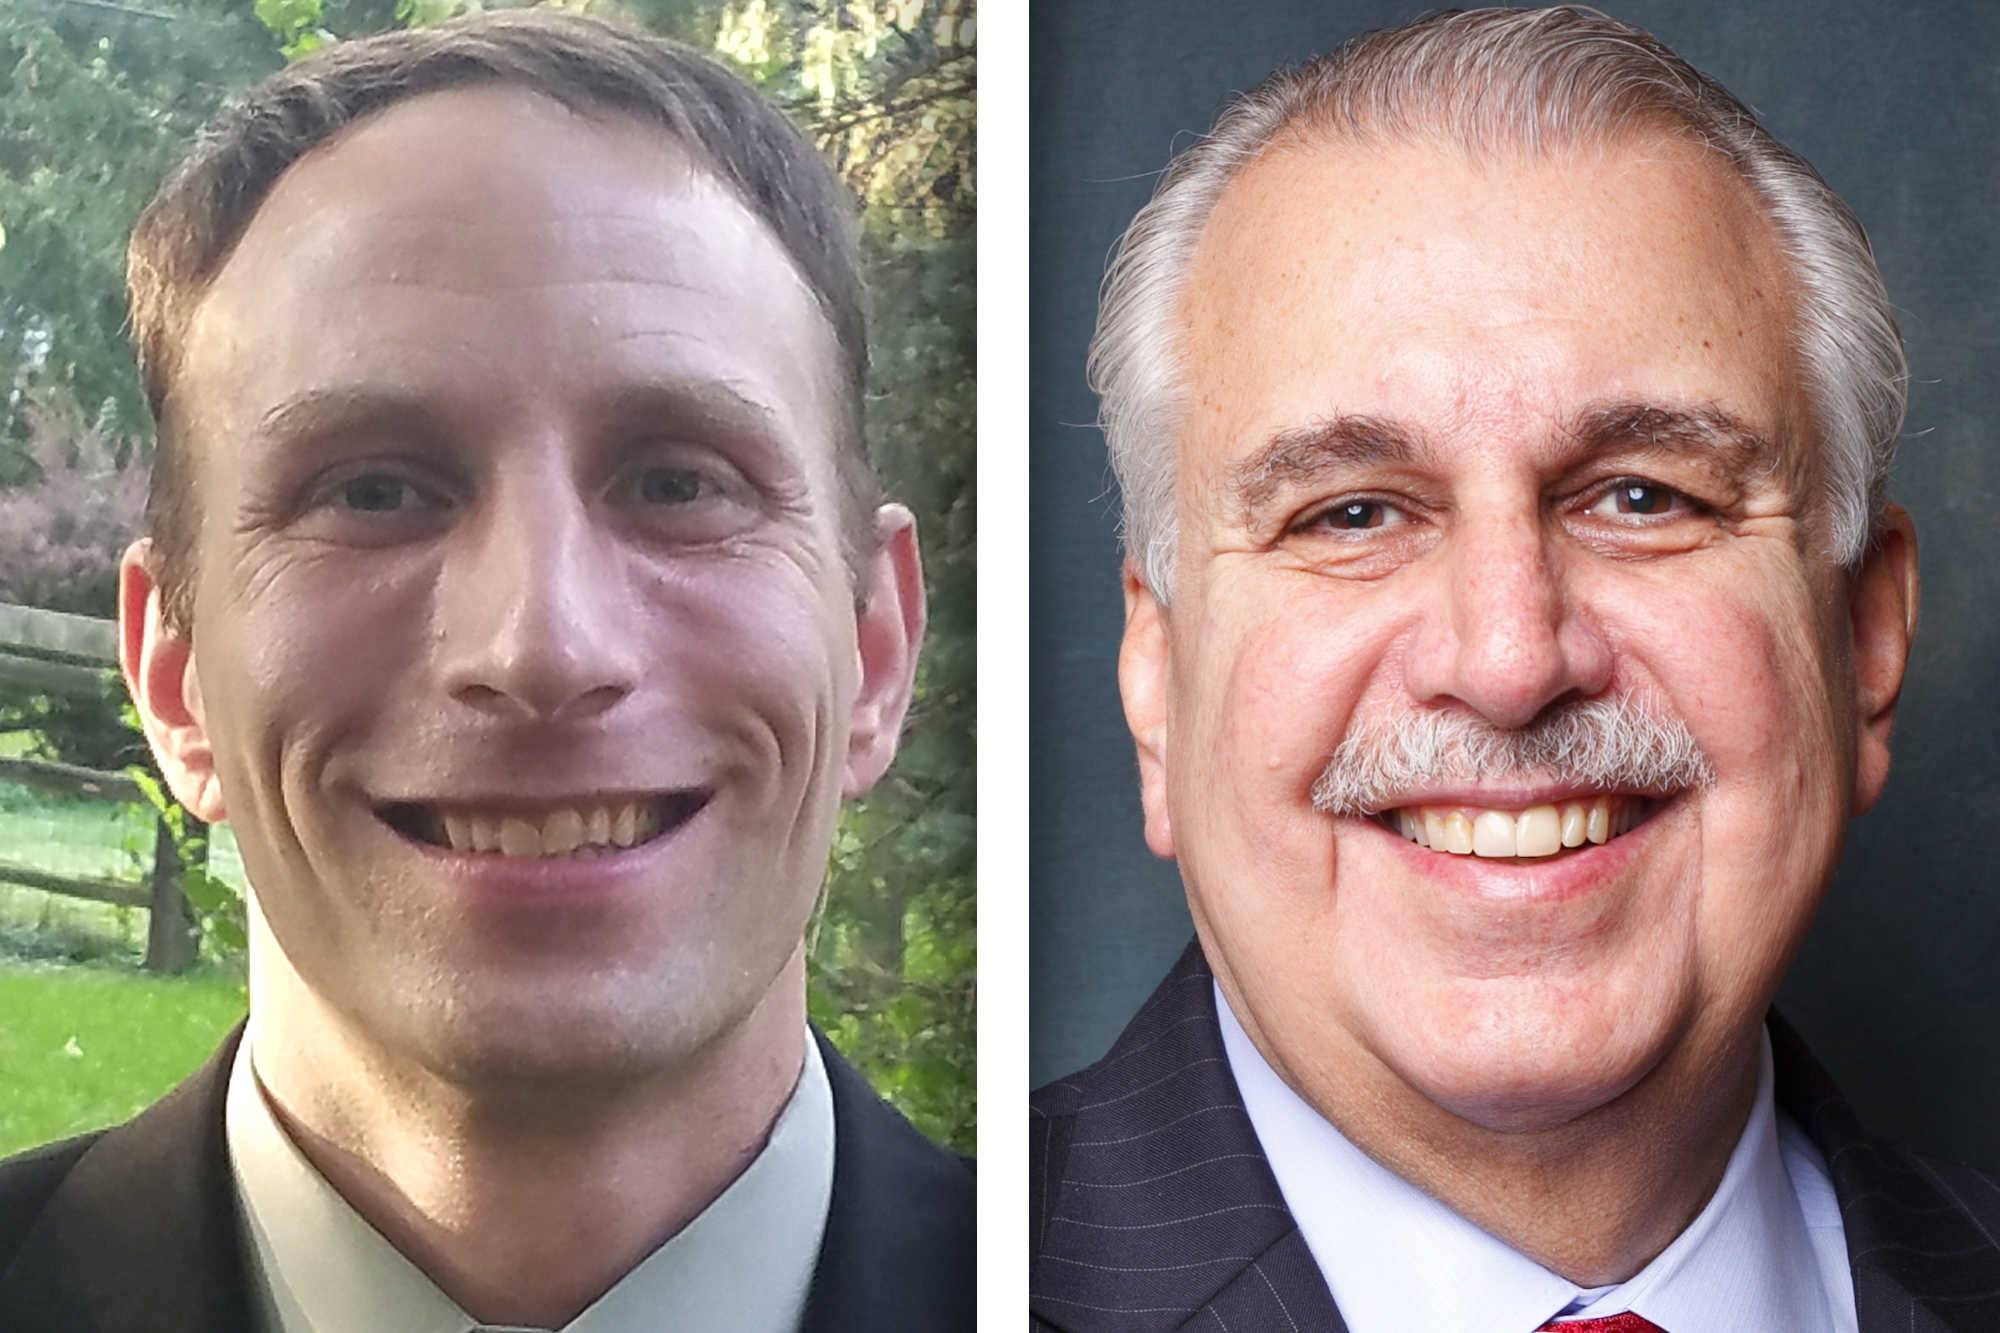 Democrat Richard Accomando and Republican Sam Tornatore are candidates for a 2-year, District 1 seat on the DuPage County Board.